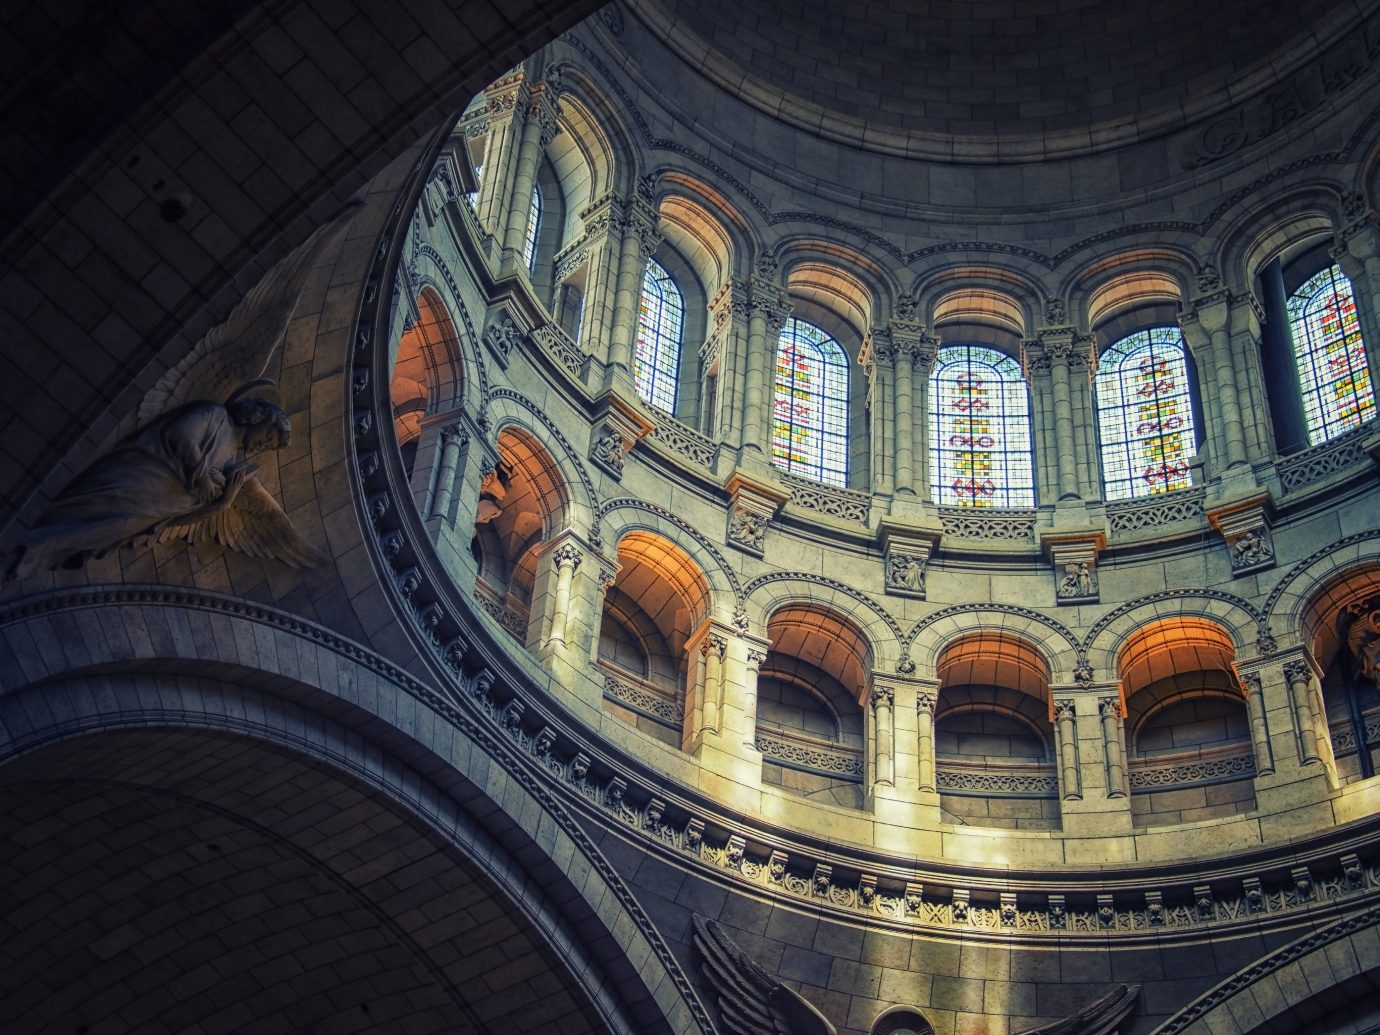 Trip Ideas dome Architecture cathedral art window basilica symmetry ancient history shape place of worship Church